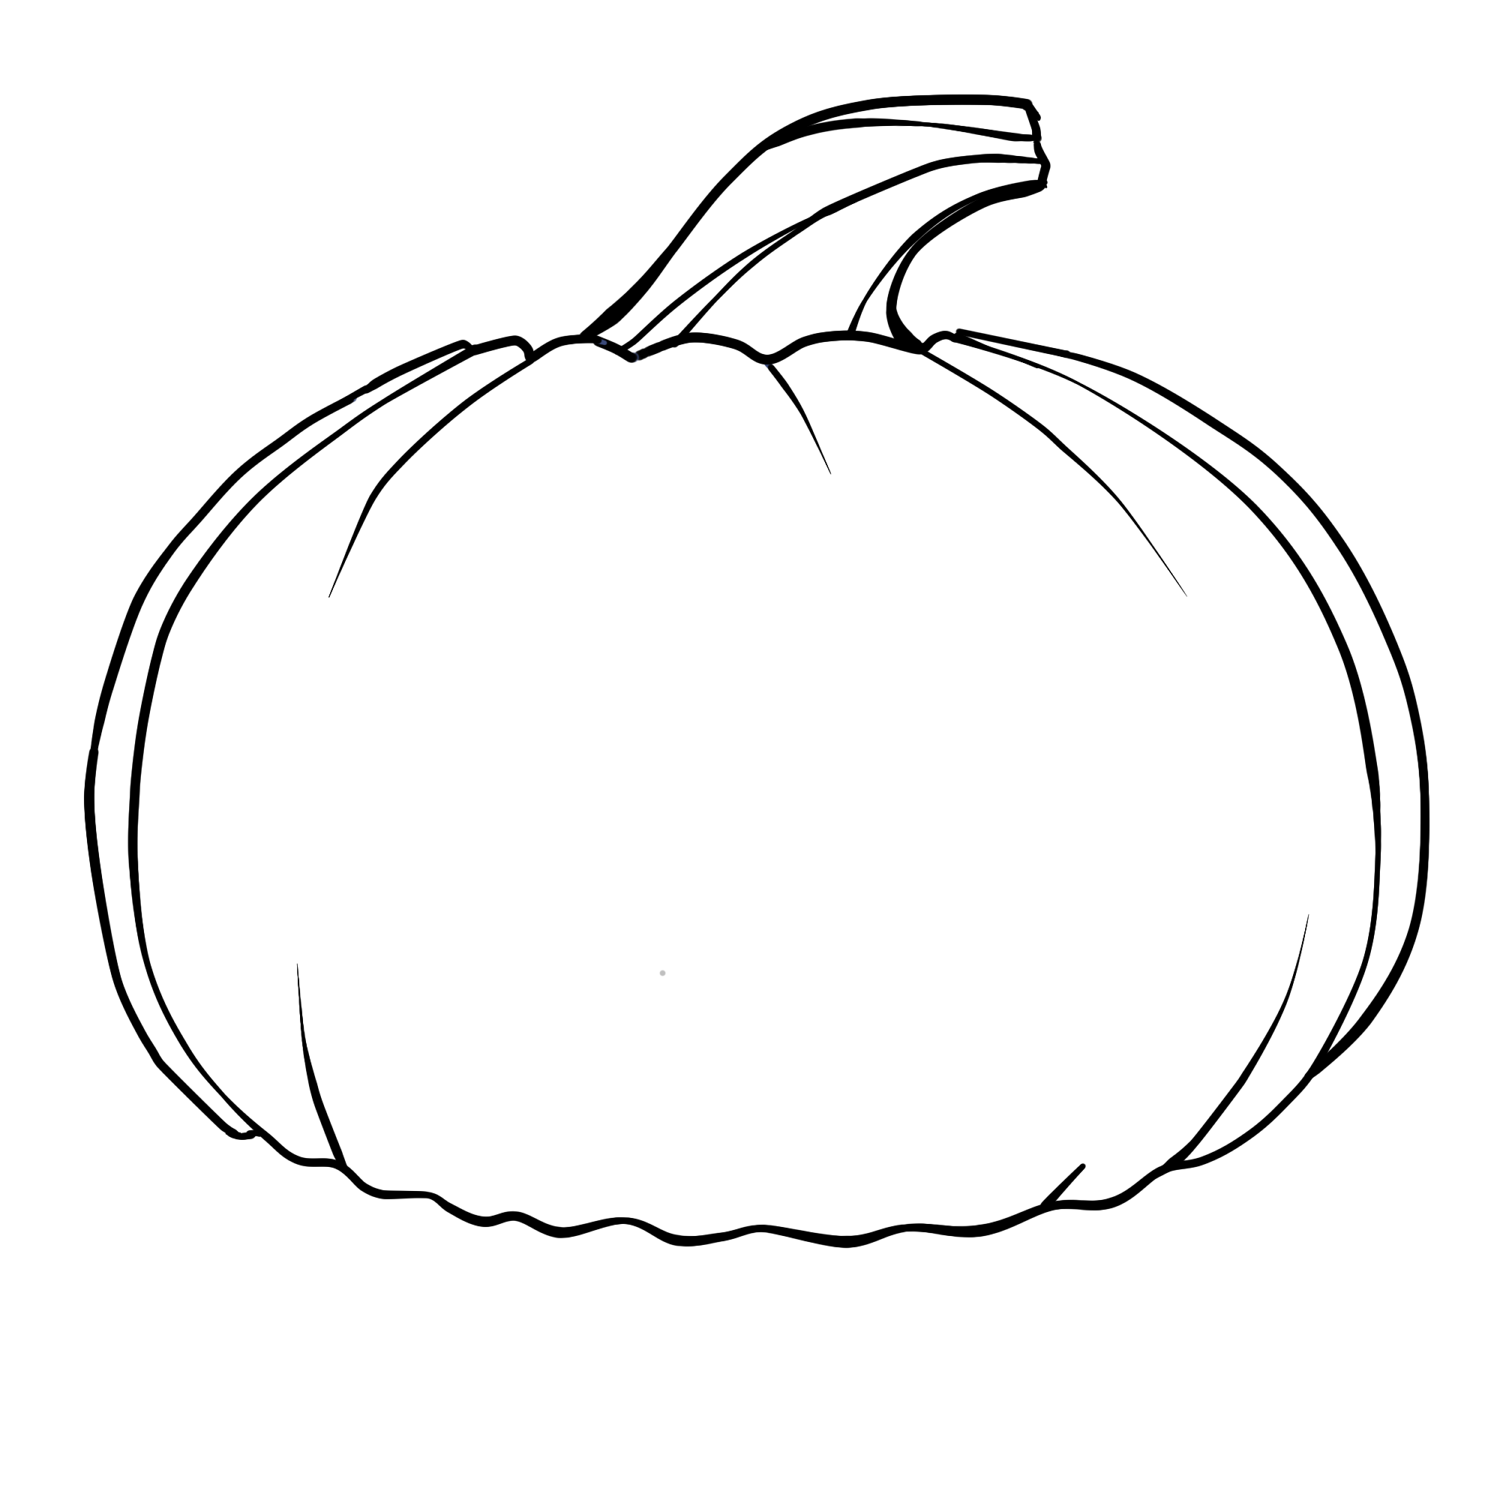 Pumpkin Outline Clipart.